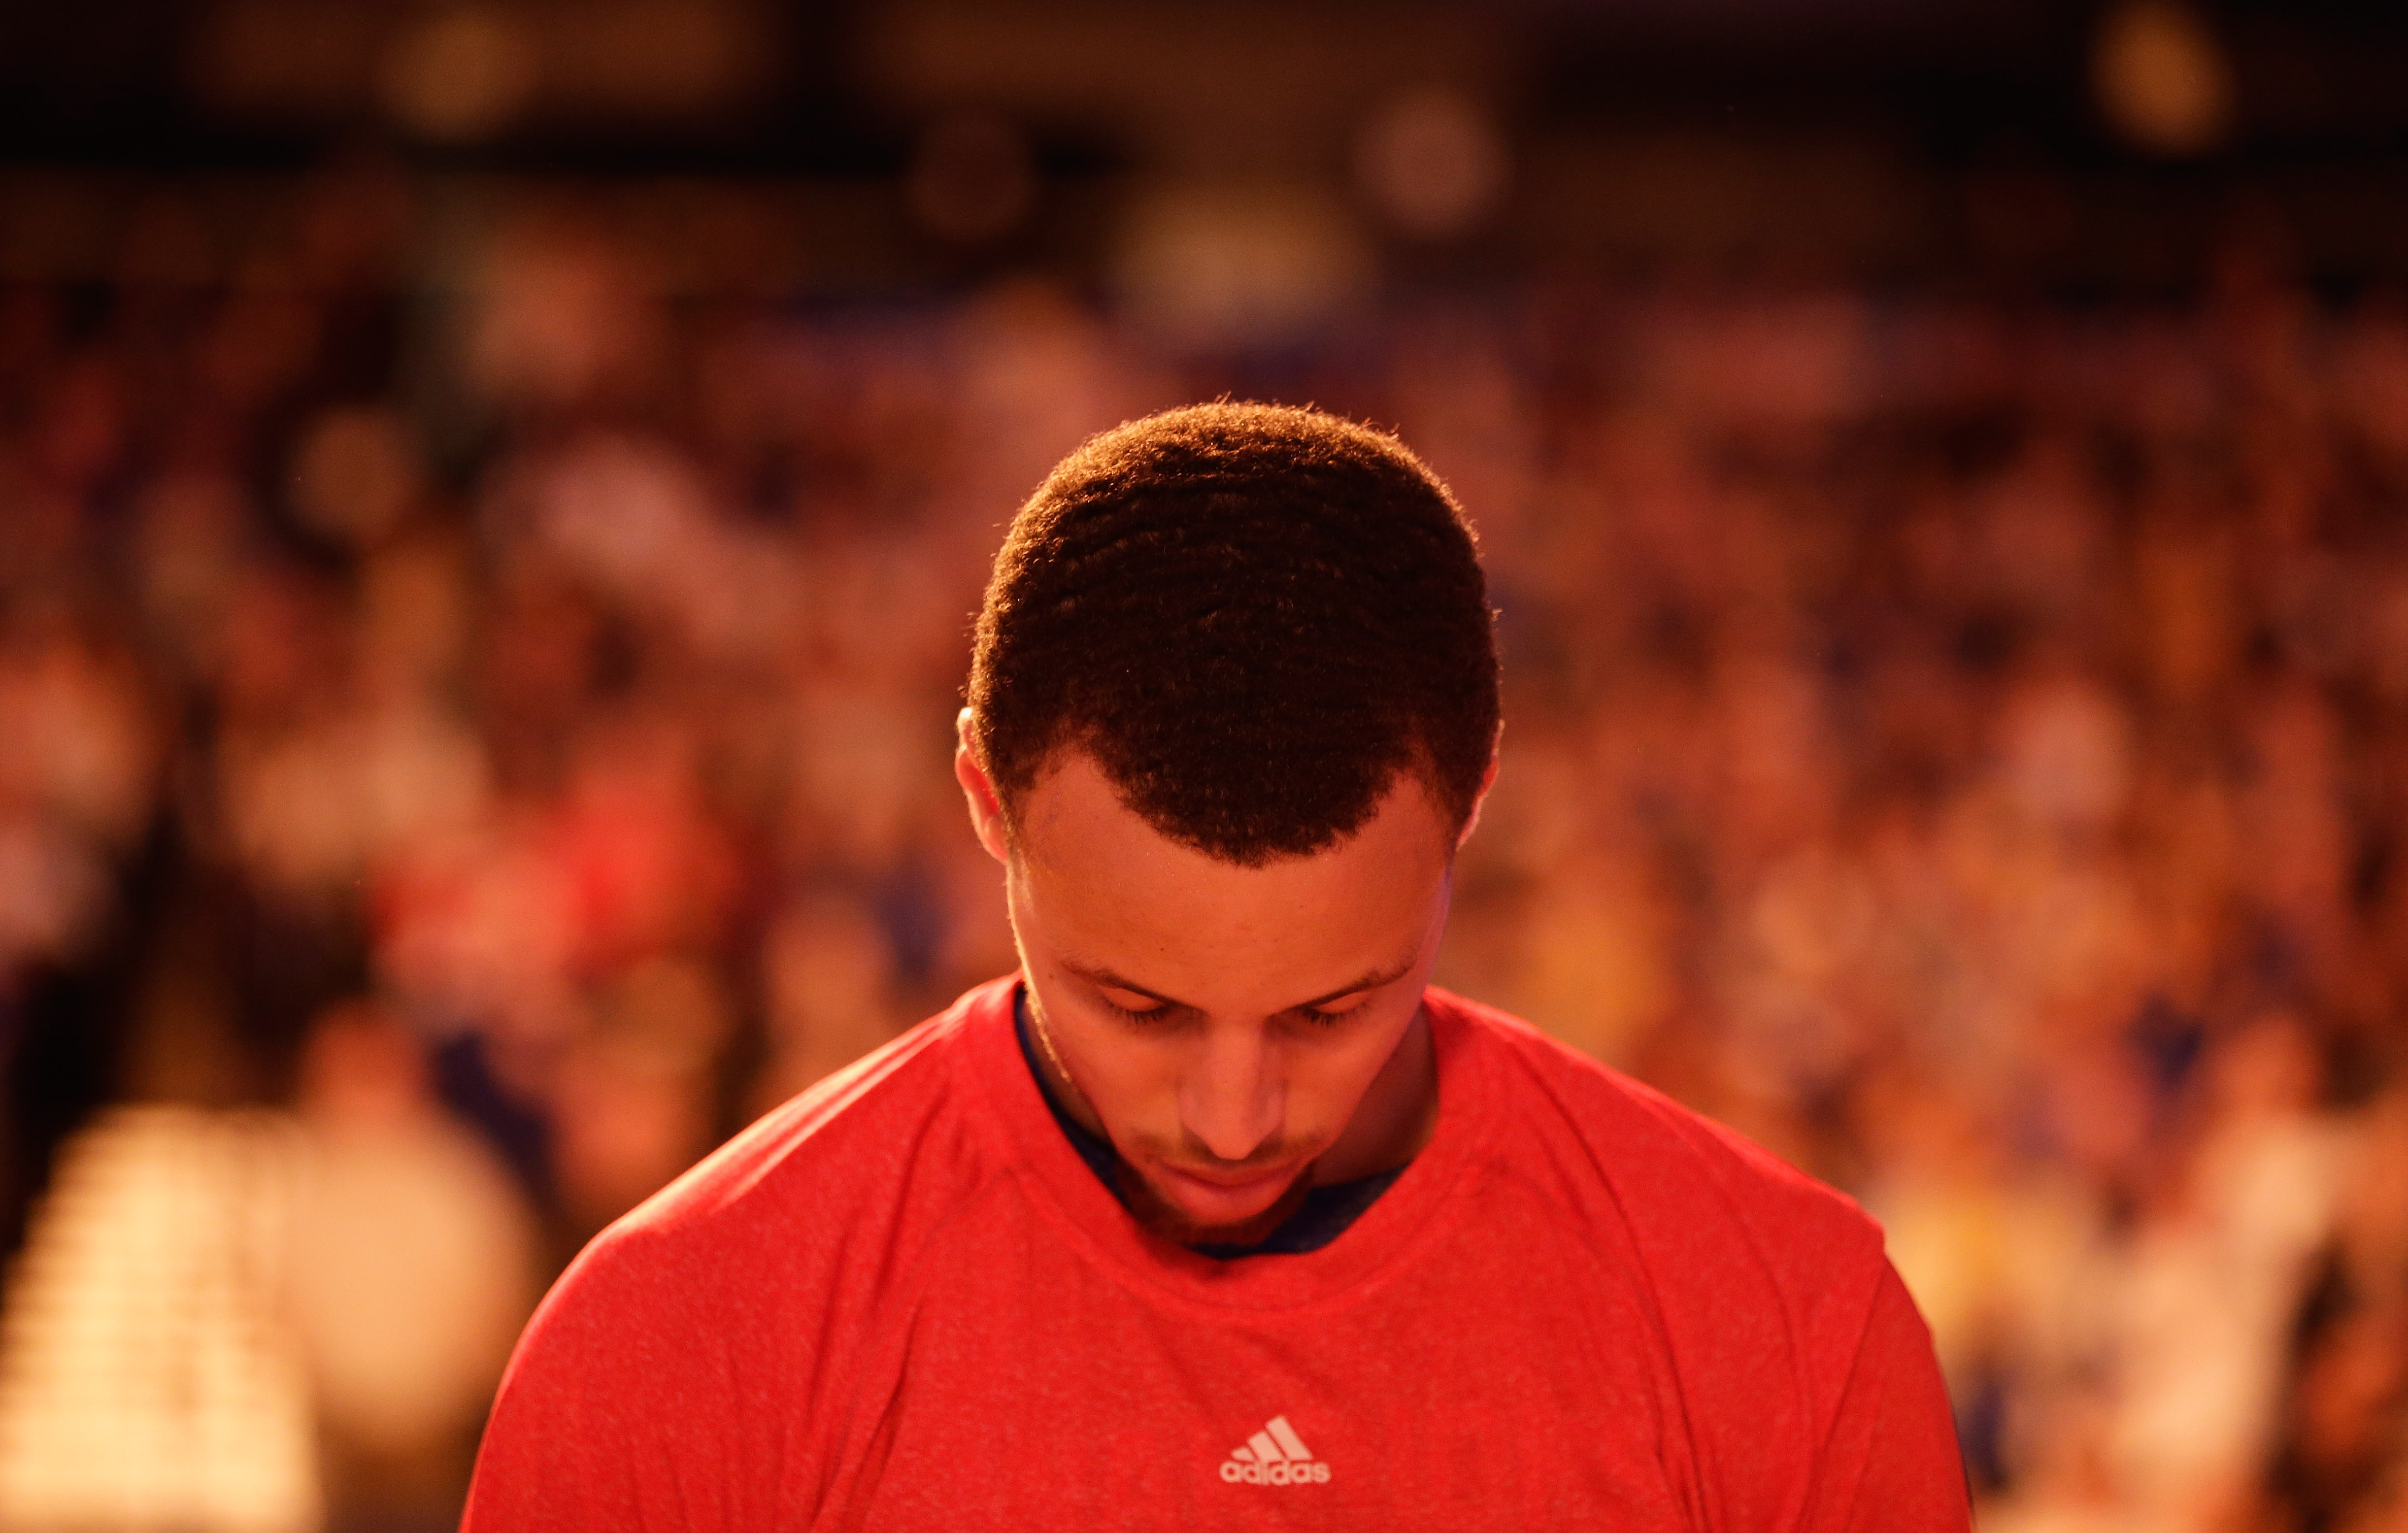 OAKLAND, CA - JANUARY 27: Stephen Curry #30 of the Golden State Warriors stands on the court for the National Anthem before their game against the Chicago Bulls at ORACLE Arena on January 27, 2015 in Oakland, California. NOTE TO USER: User expressly acknowledges and agrees that, by downloading and or using this photograph, User is consenting to the terms and conditions of the Getty Images License Agreement. (Photo by Ezra Shaw/Getty Images)